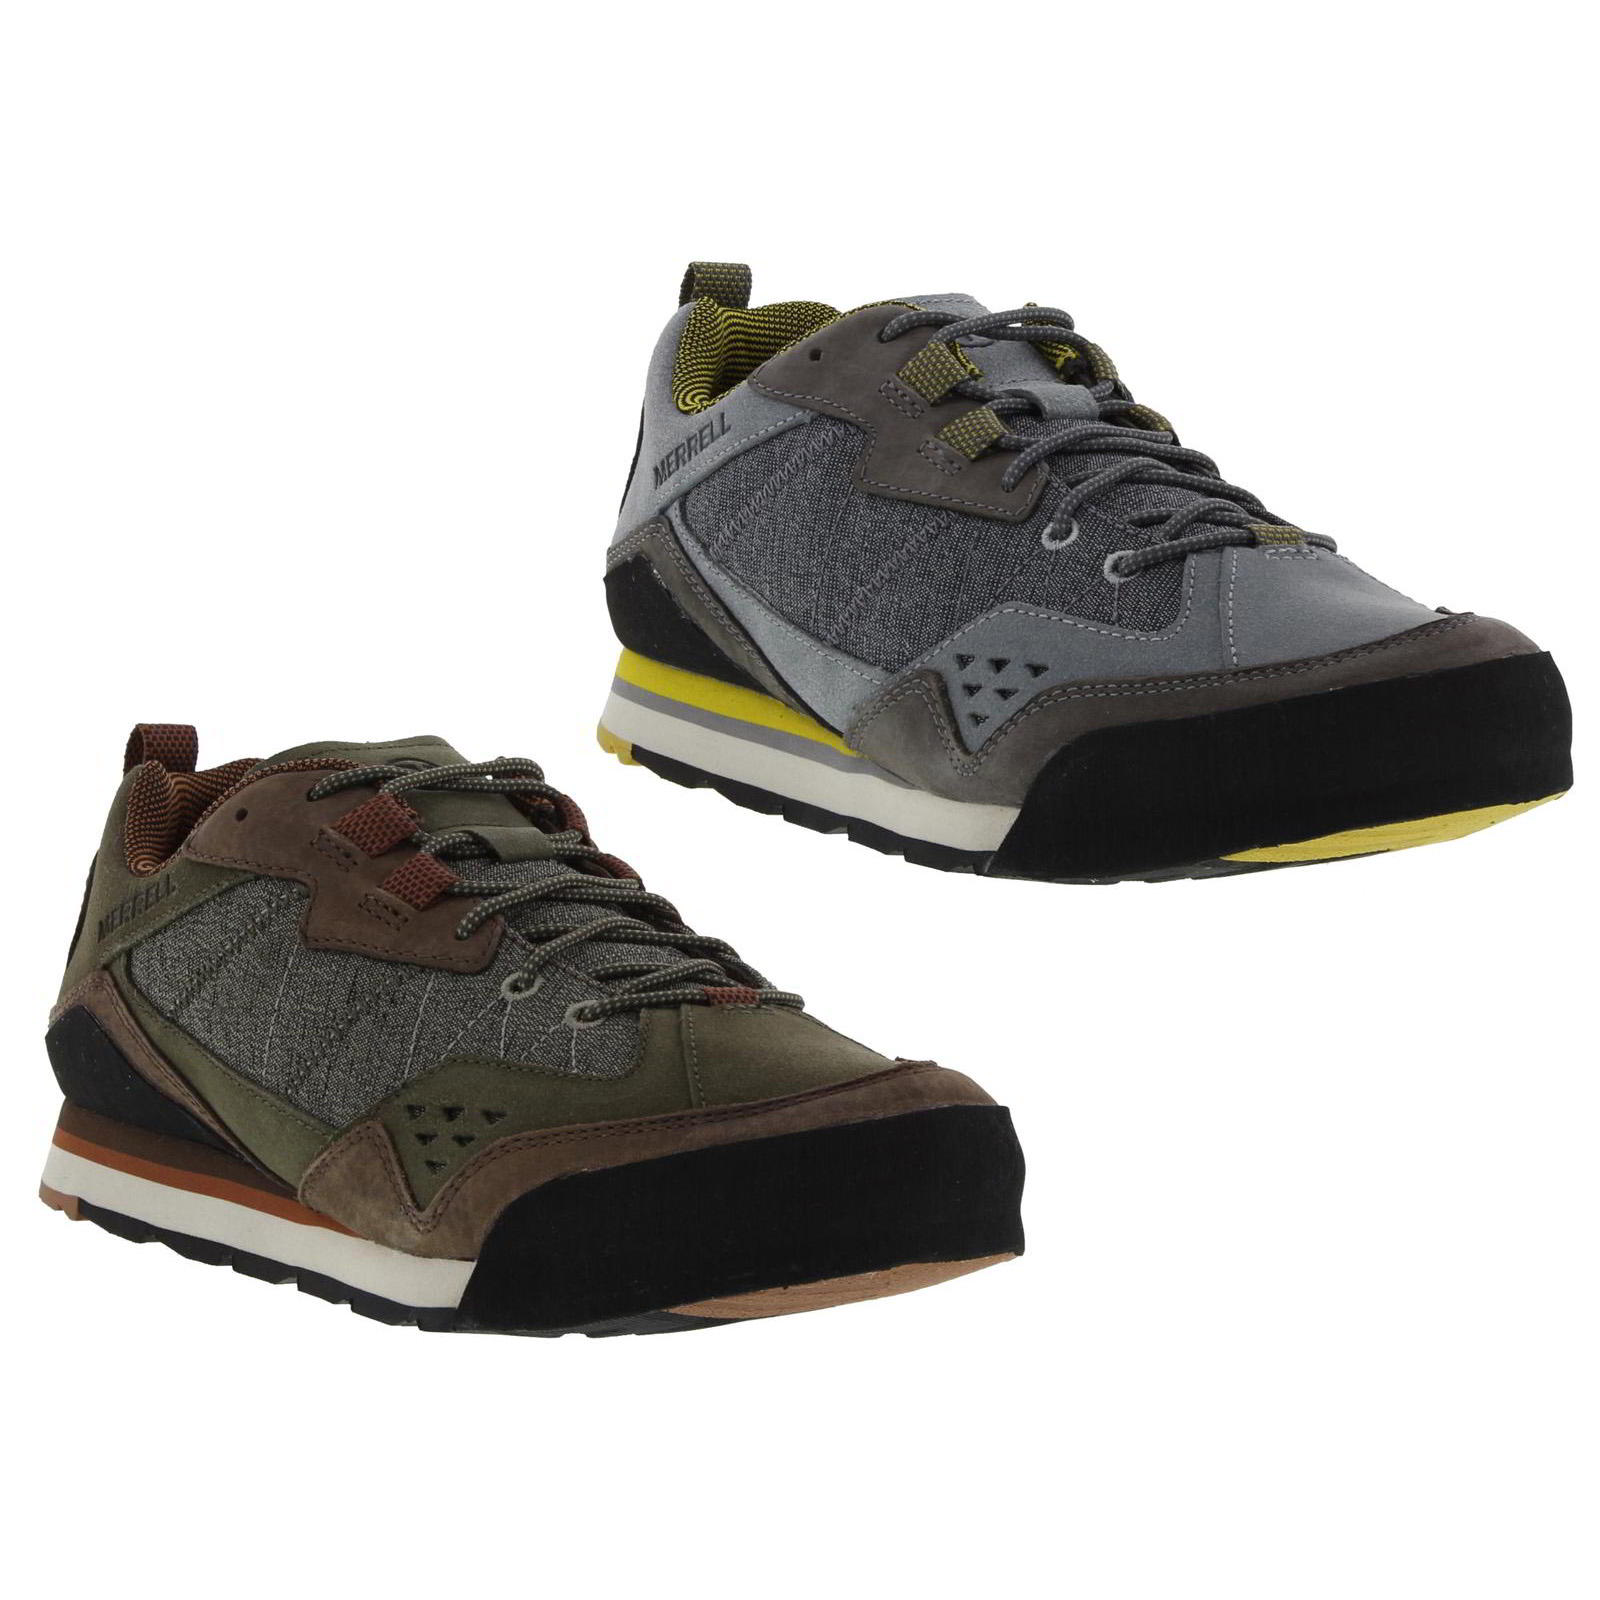 f926333c6c07b Details about Merrell Burnt Rock Mens Grey Brown Leather Walking Shoes  Trainers Size UK 8-11